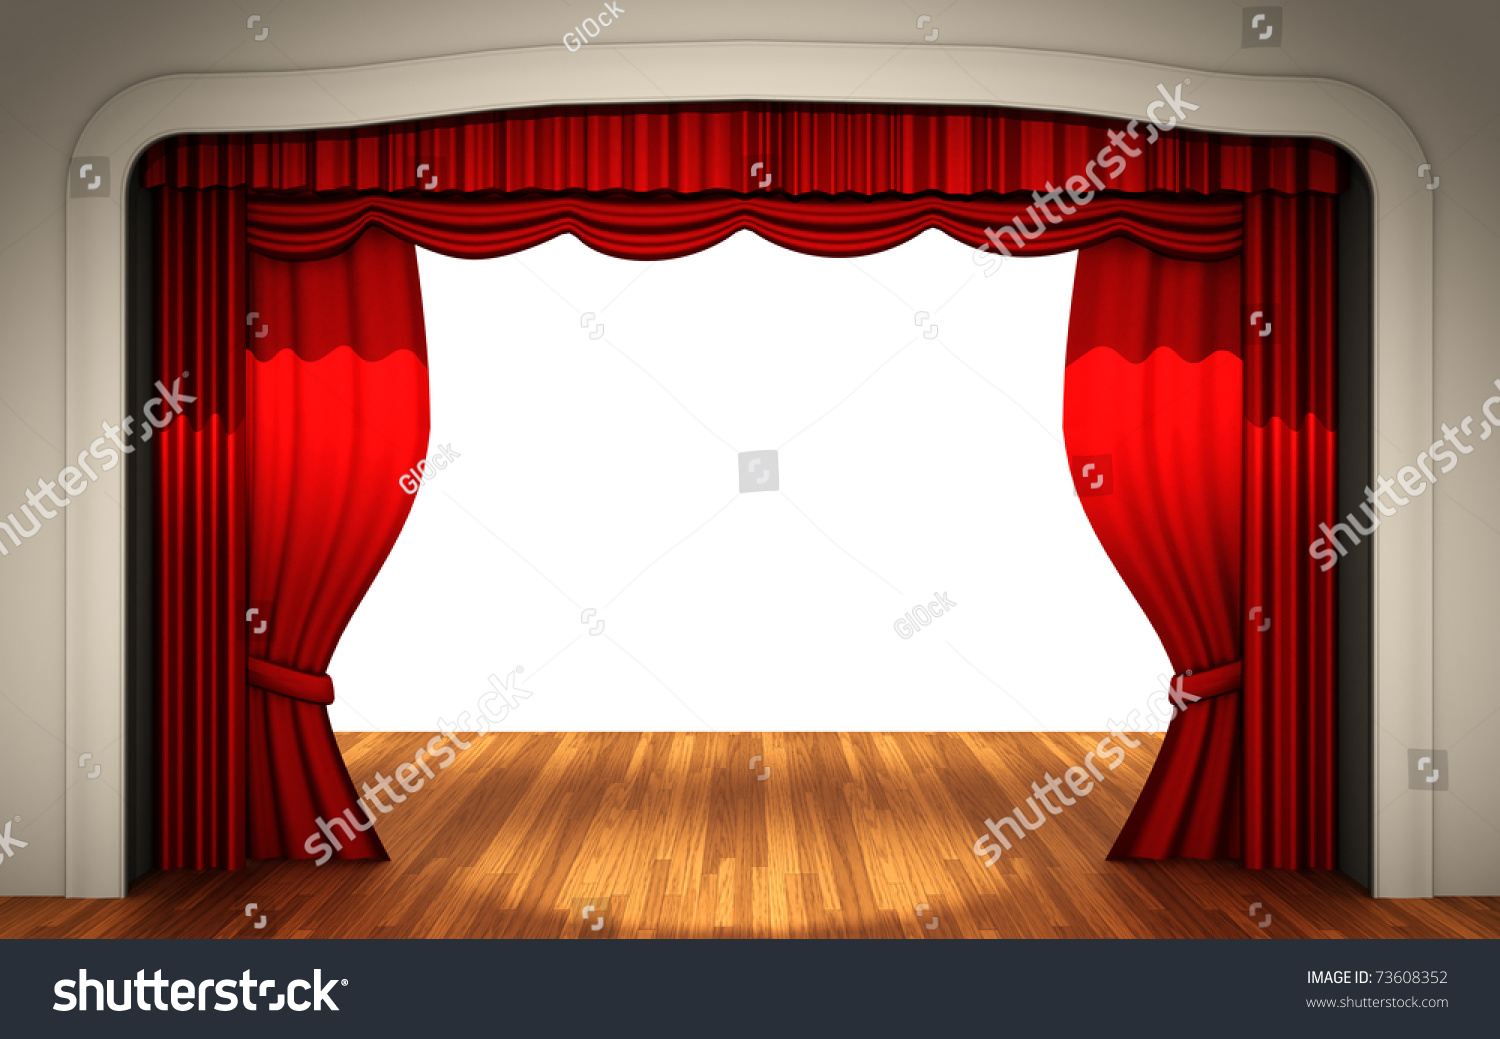 Real open stage curtains - Red Stage Curtains Open Stage With Open Curtain